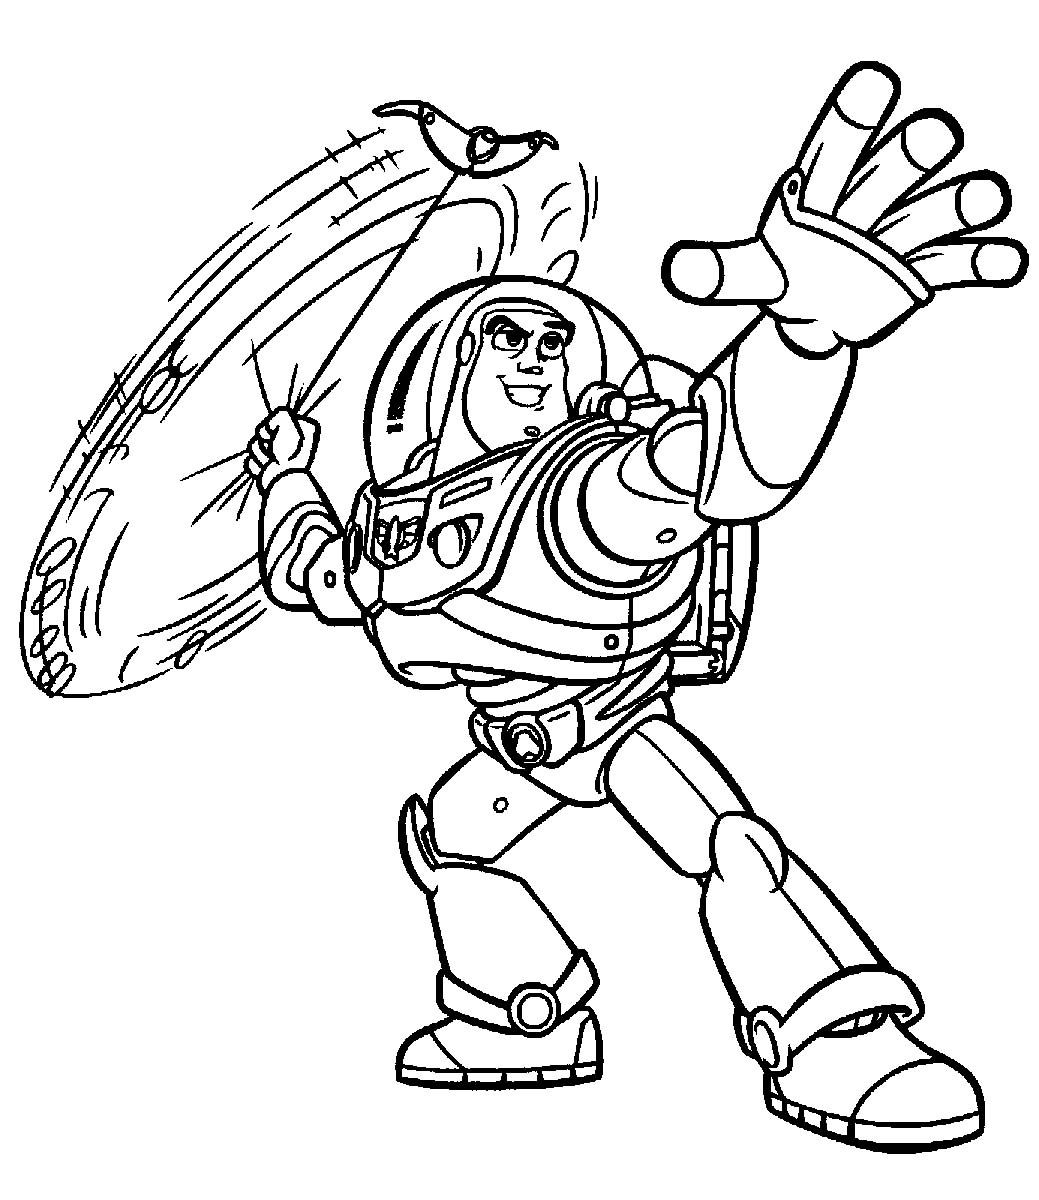 Coloring pages toy story - Buzz Lightyear Throwing Weapons Coloring Pages For Kids Printable Toy Story Coloring Pages For Kids